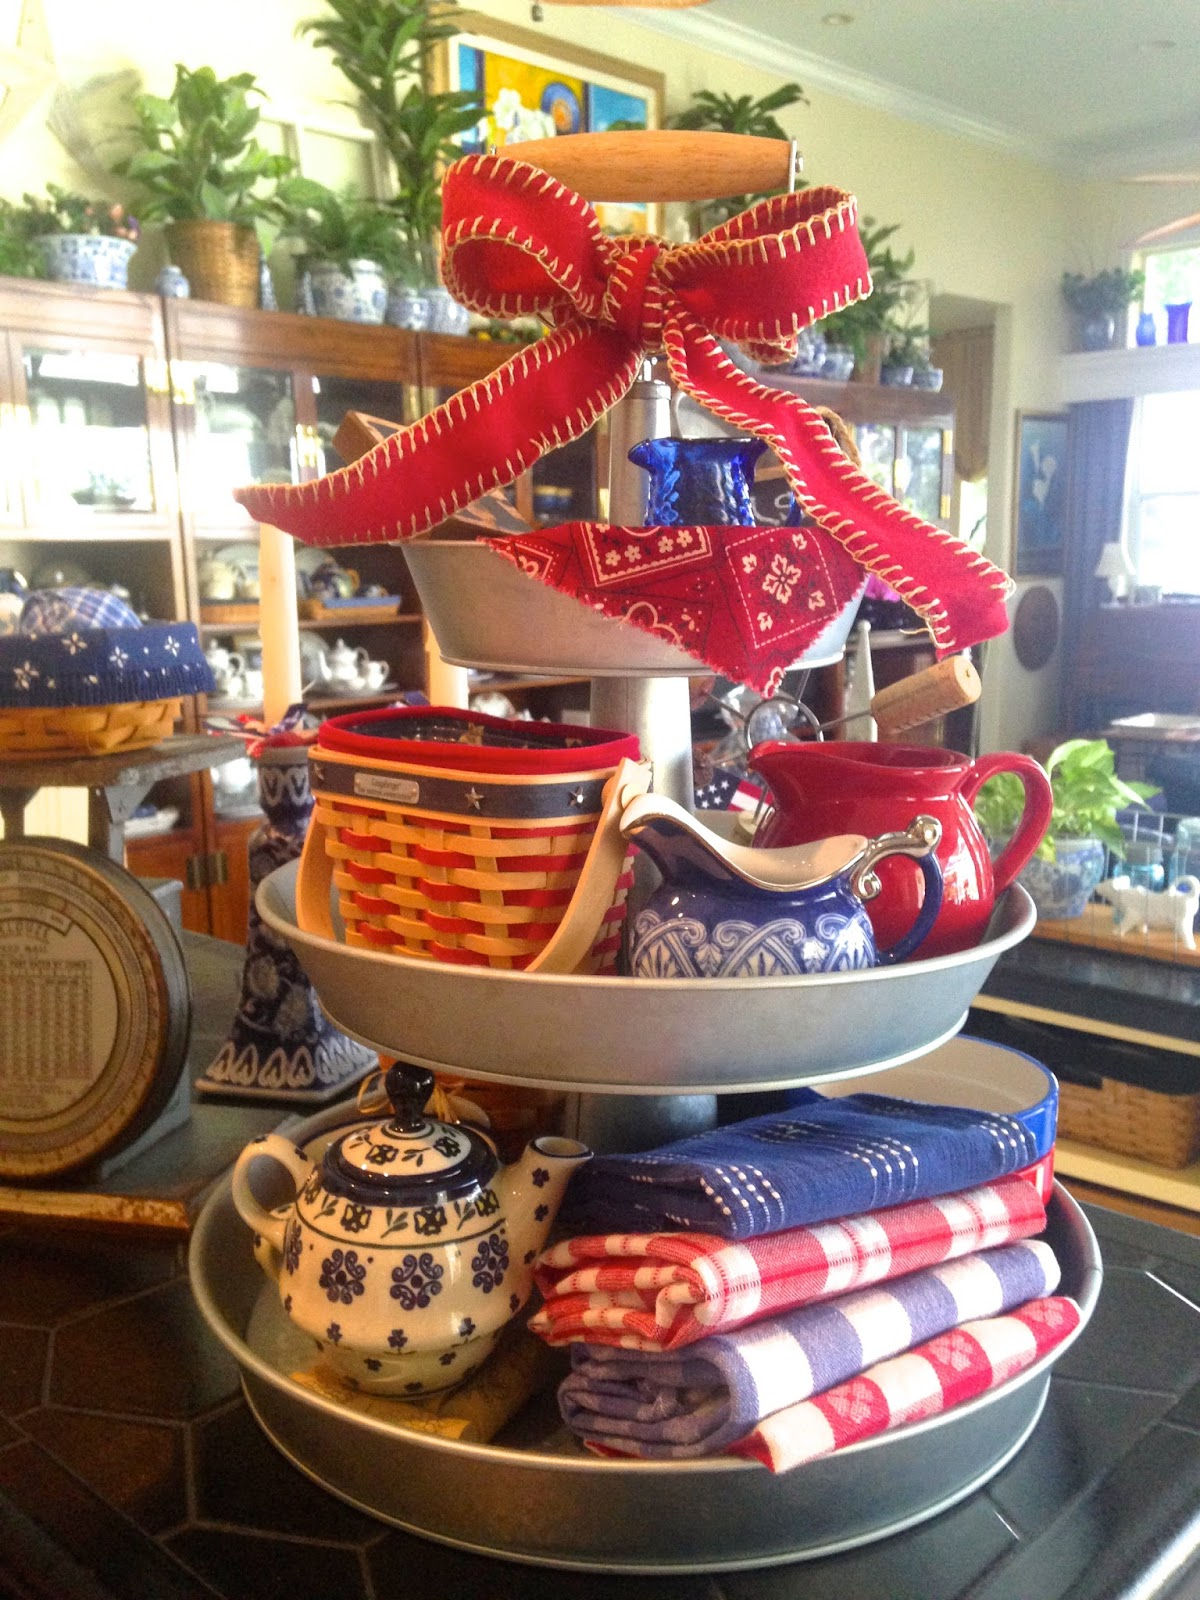 Trays For Decor On Kitchen Counter Ideas: MAY DAYS: Patriotic 3-Tier GalvanizedTray